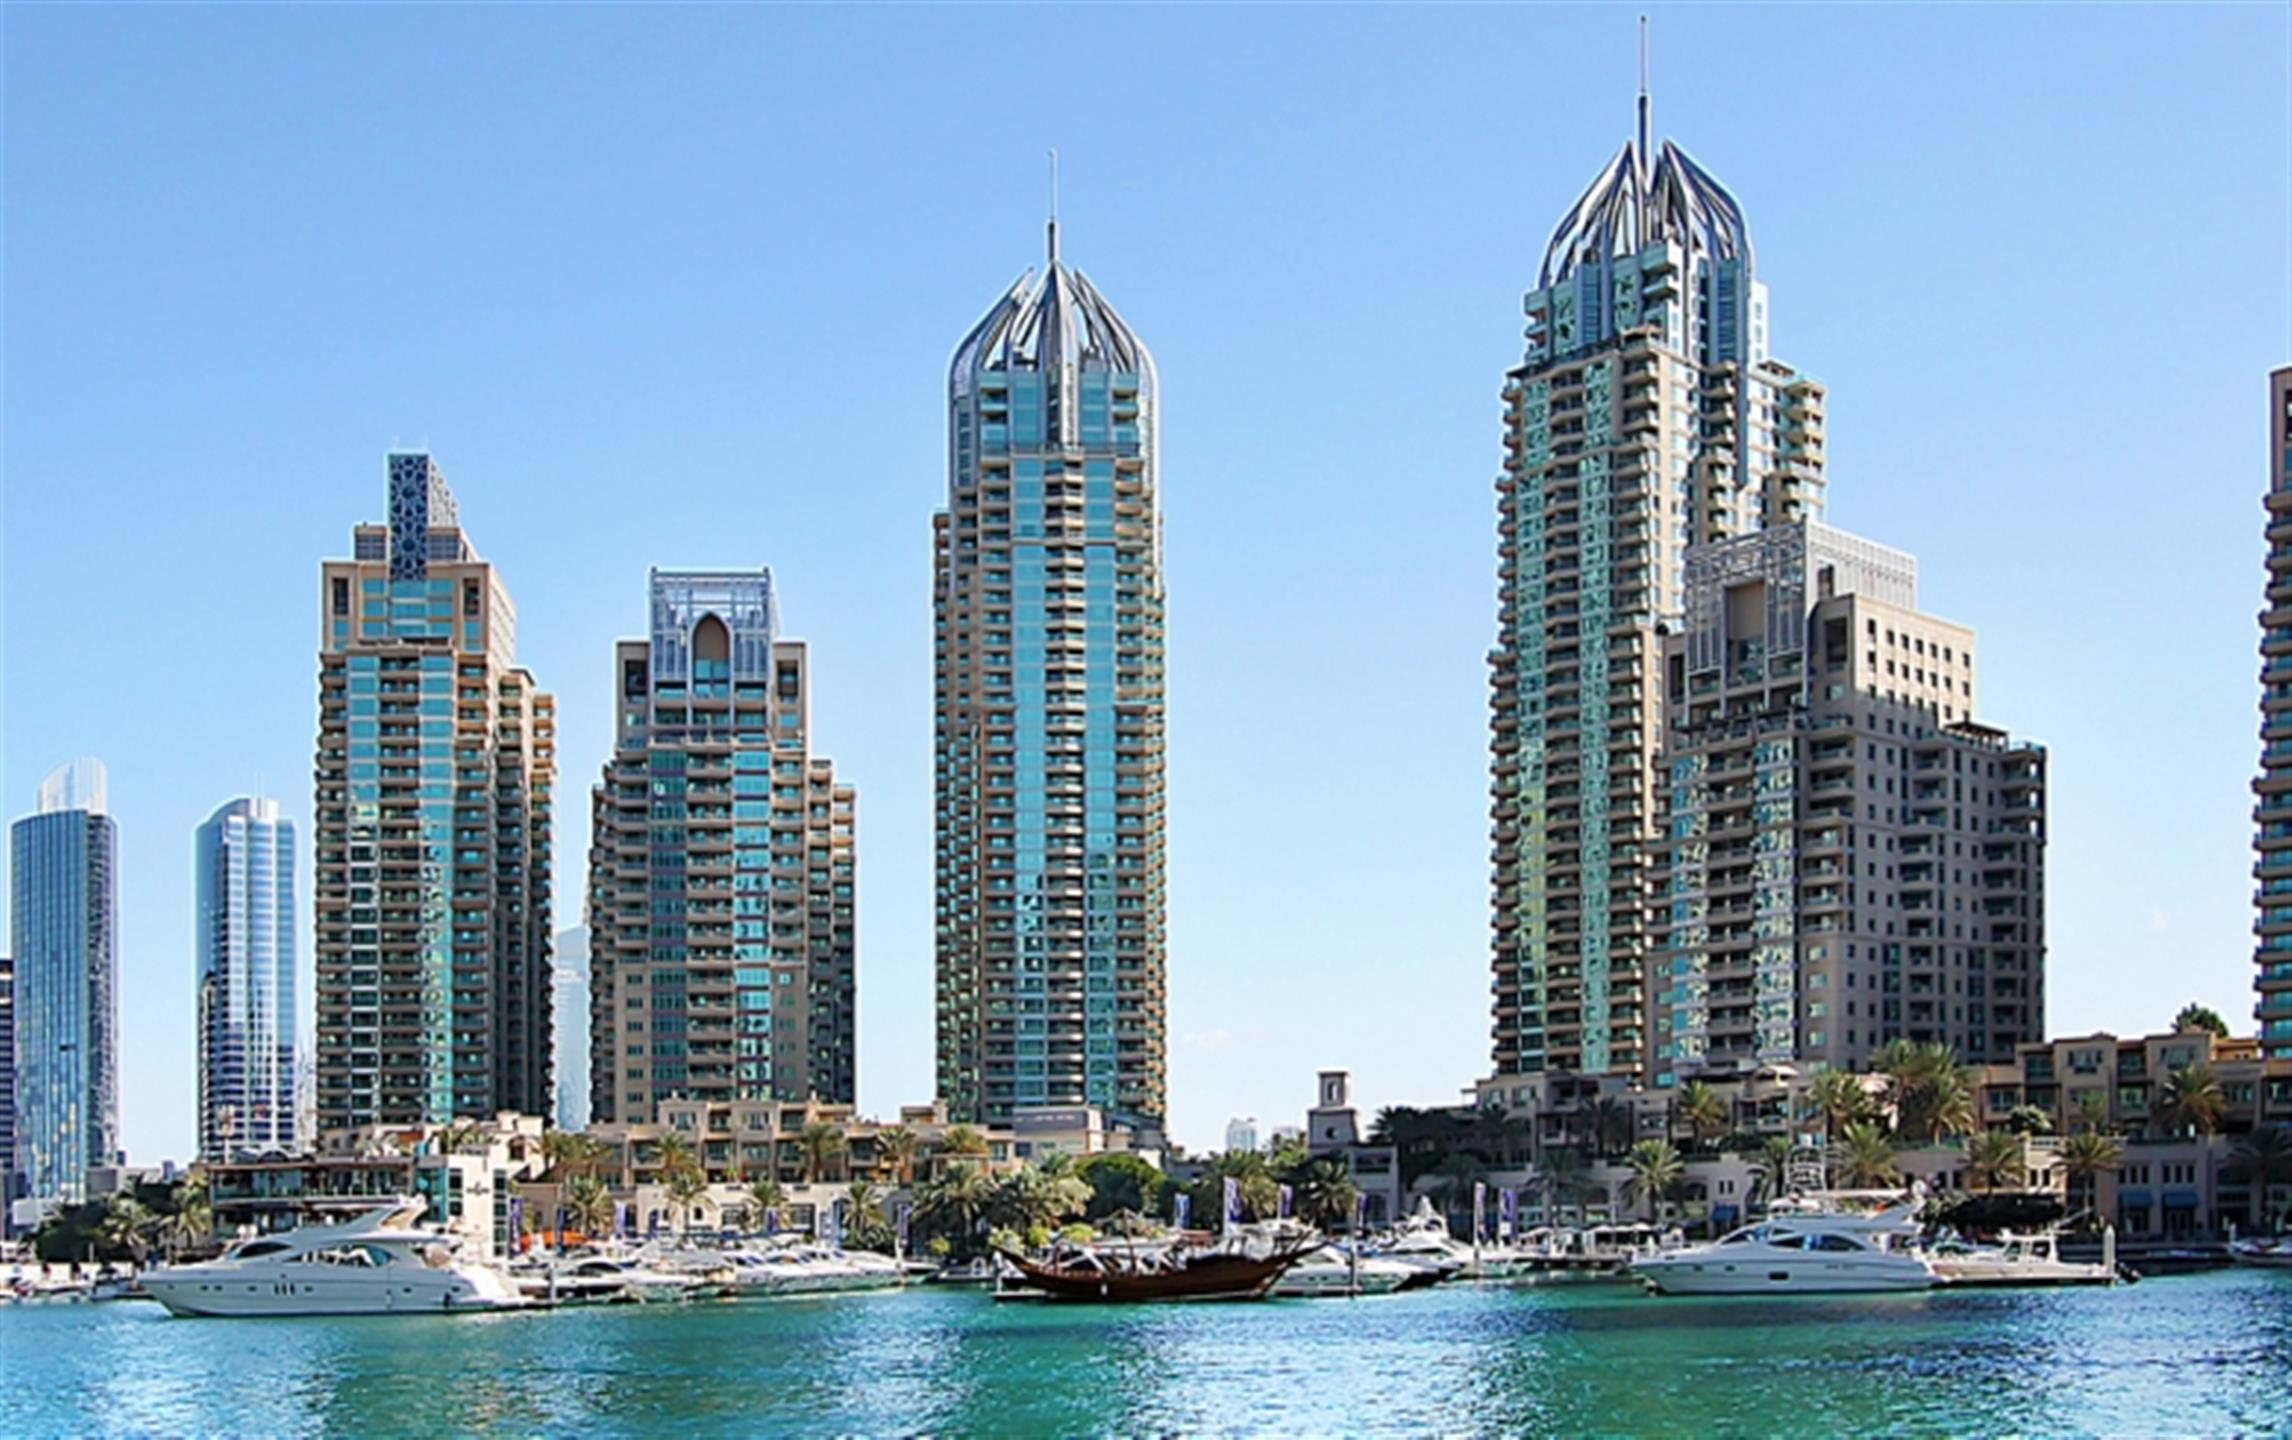 Residential Apartment/Condo, for Sale in United Arab Emirates, Dubai, Dubai Marina